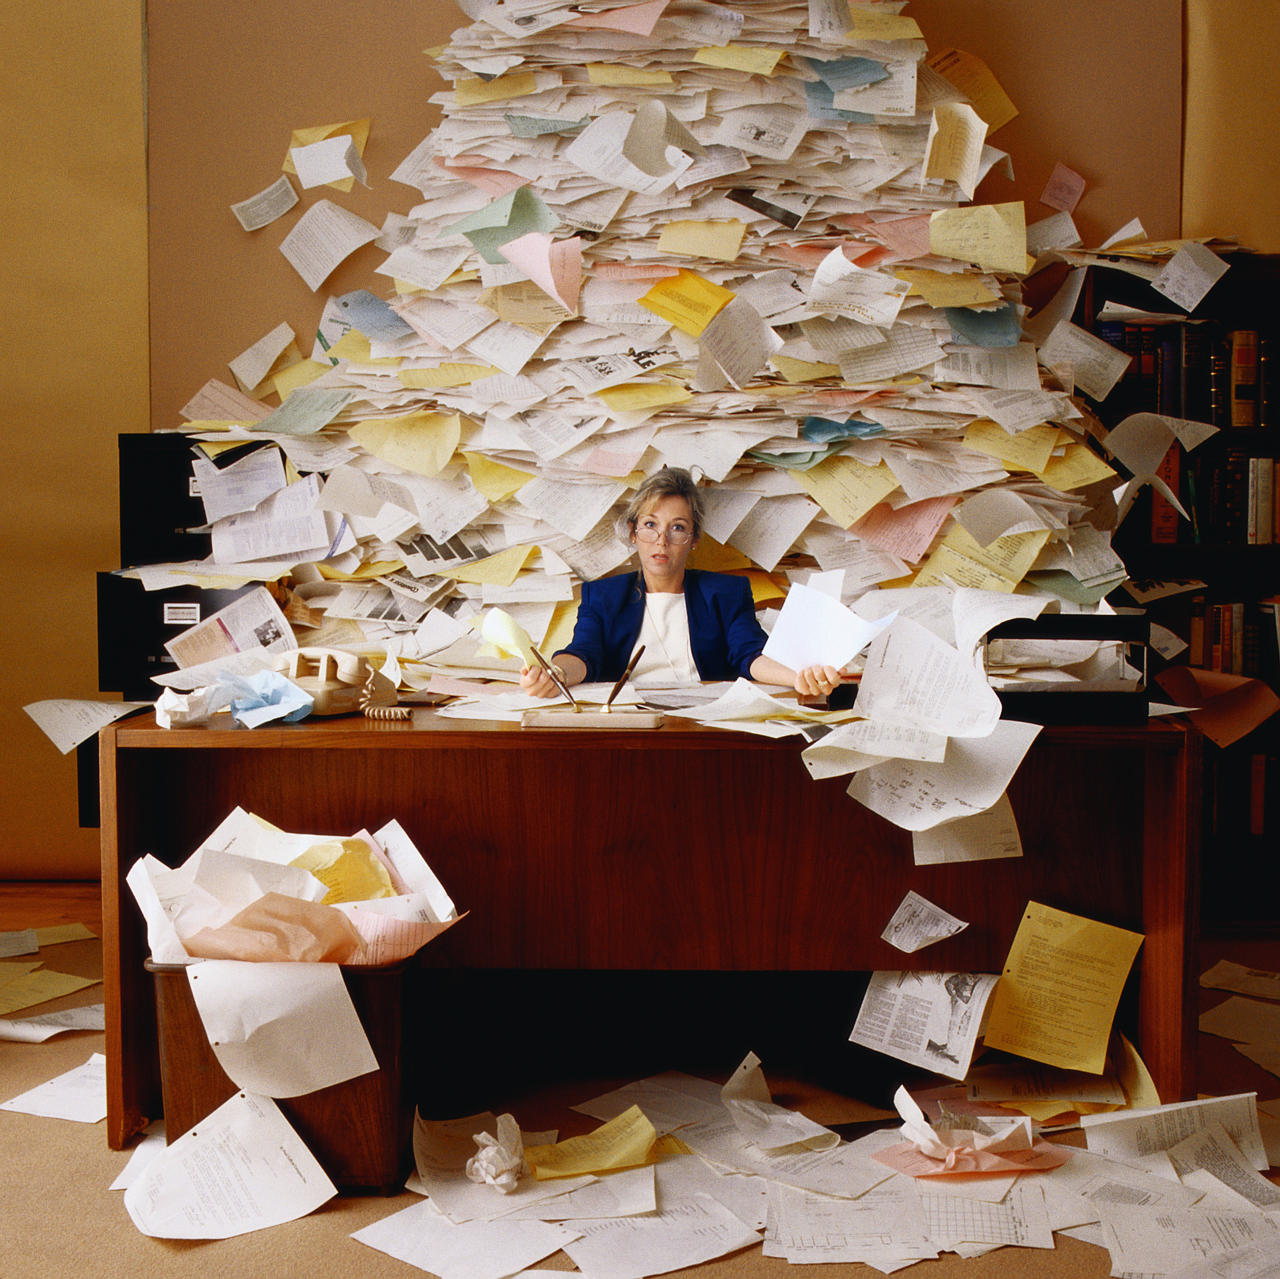 20141010 woman in the office overwhelmed with paper